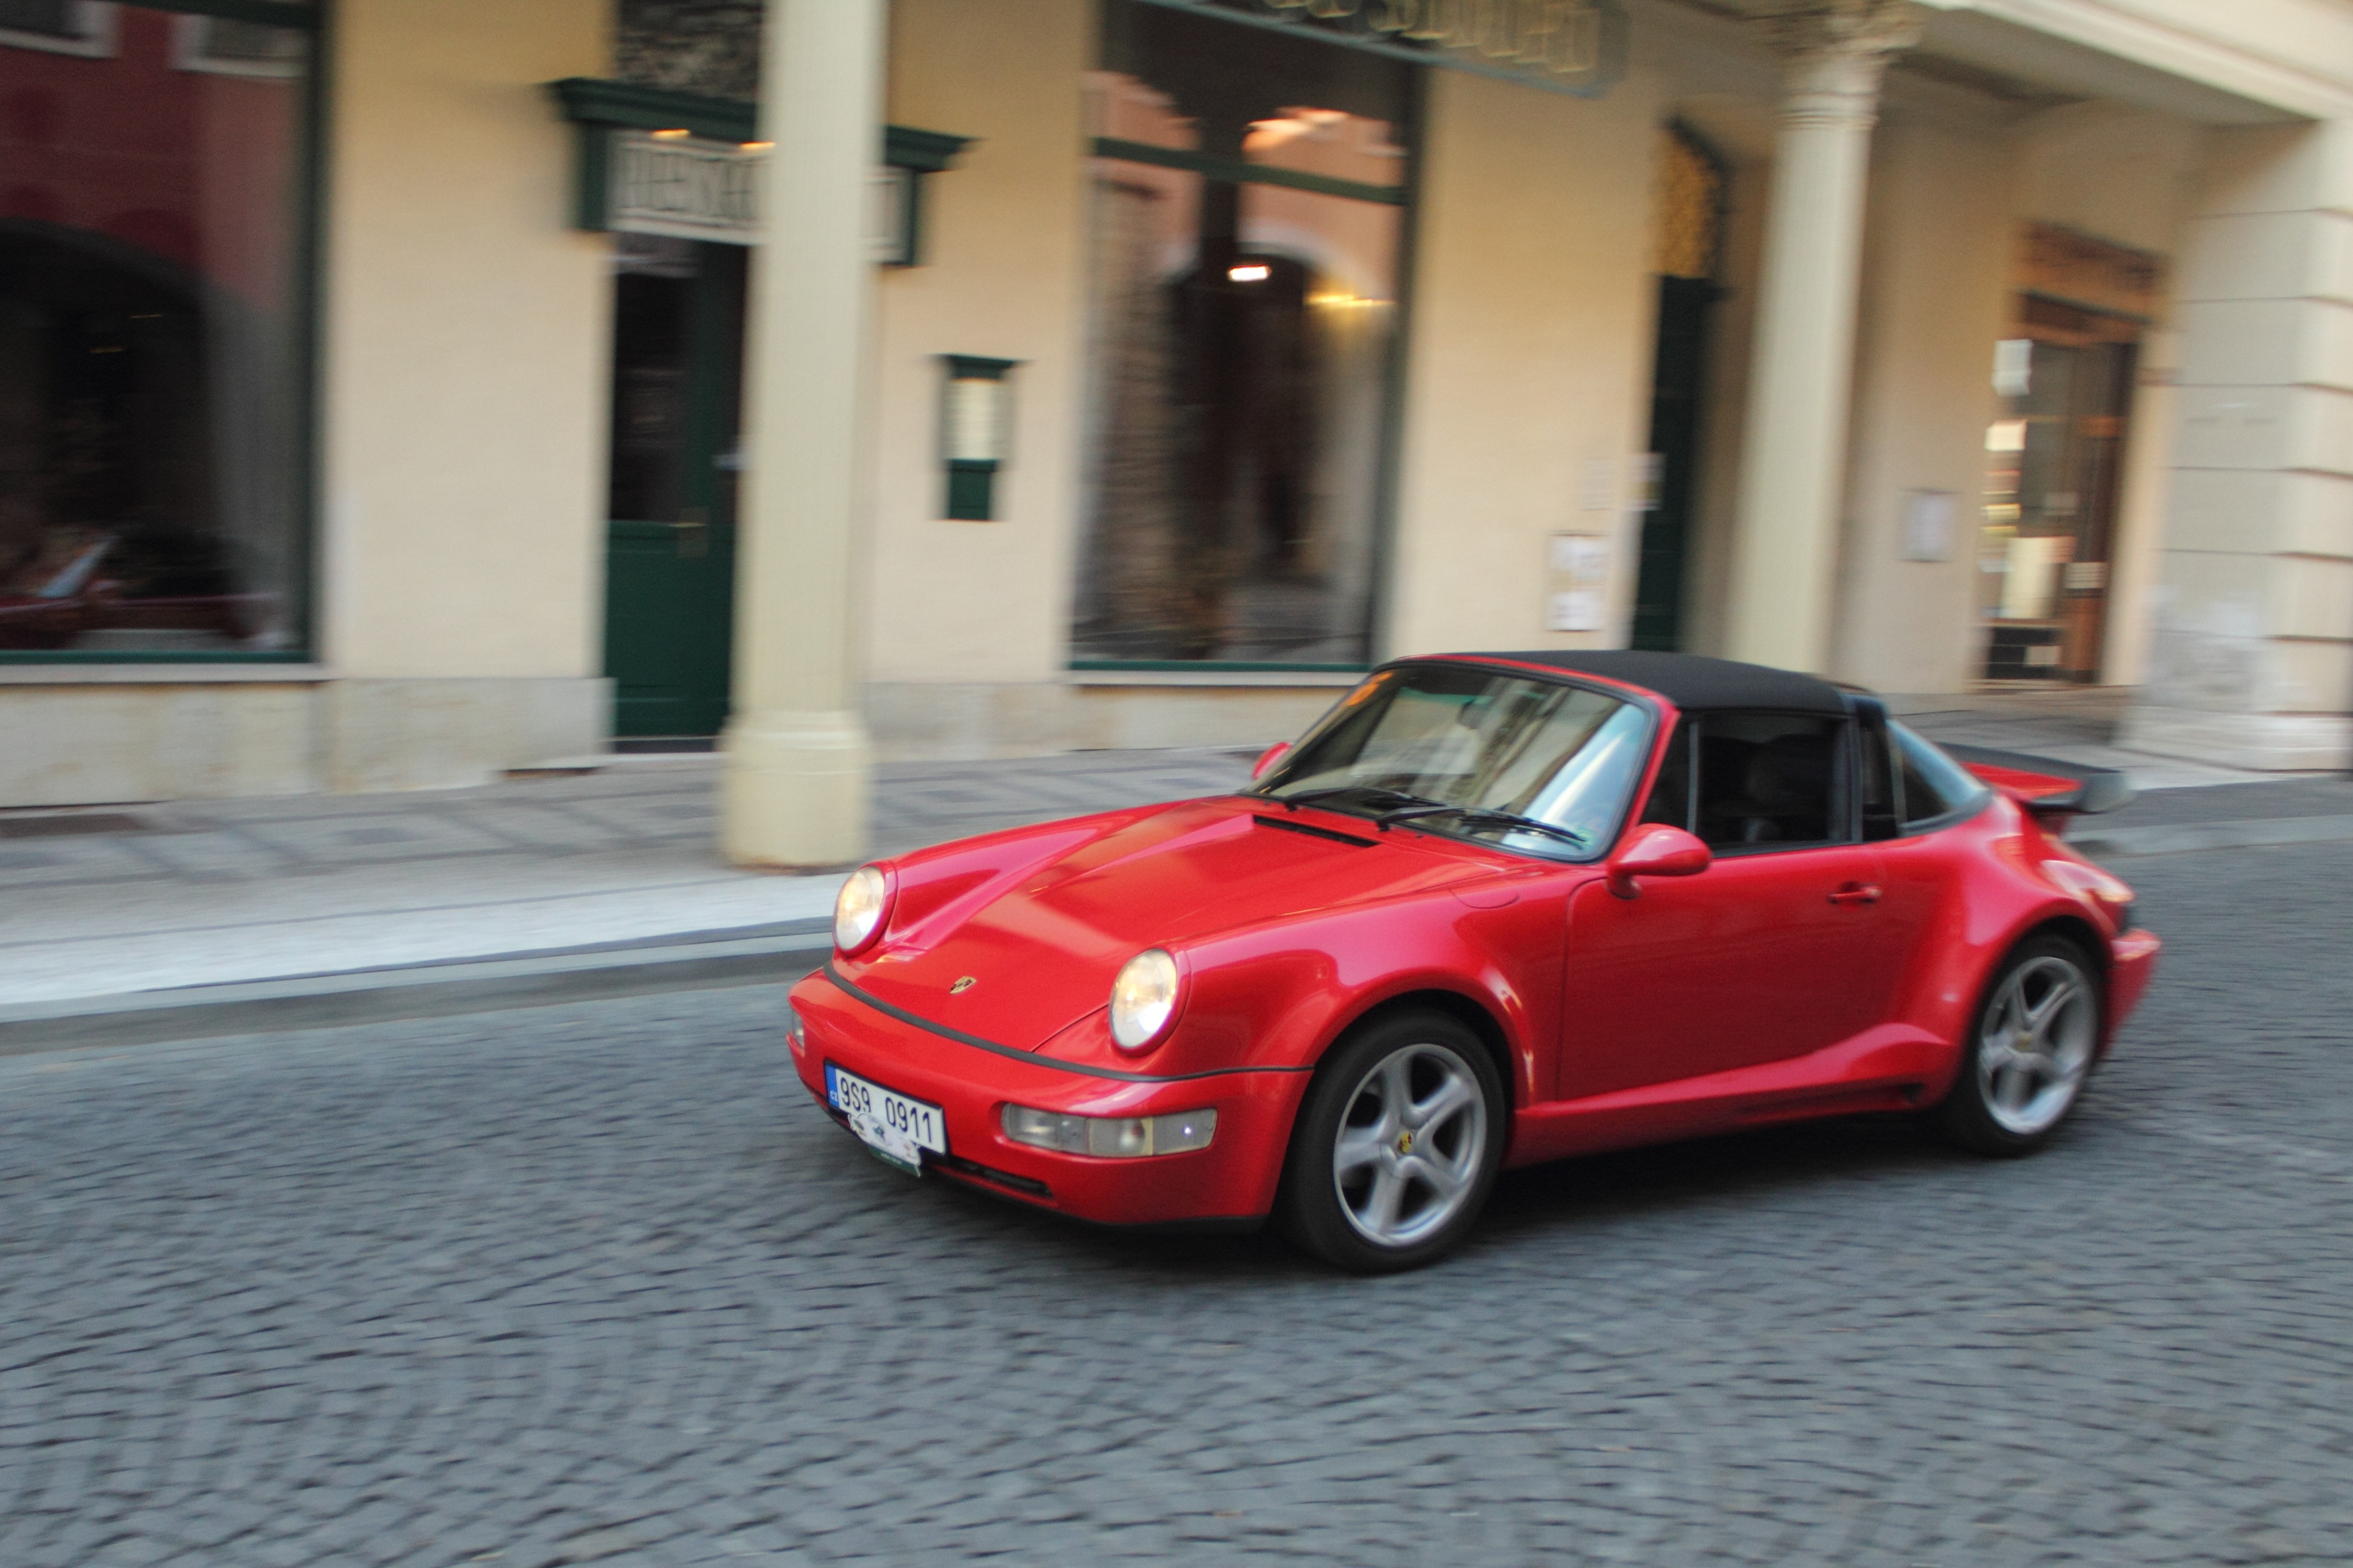 file porsche 911 targa 2013 oldtimer bohemia rally jpg wikimedia commons. Black Bedroom Furniture Sets. Home Design Ideas